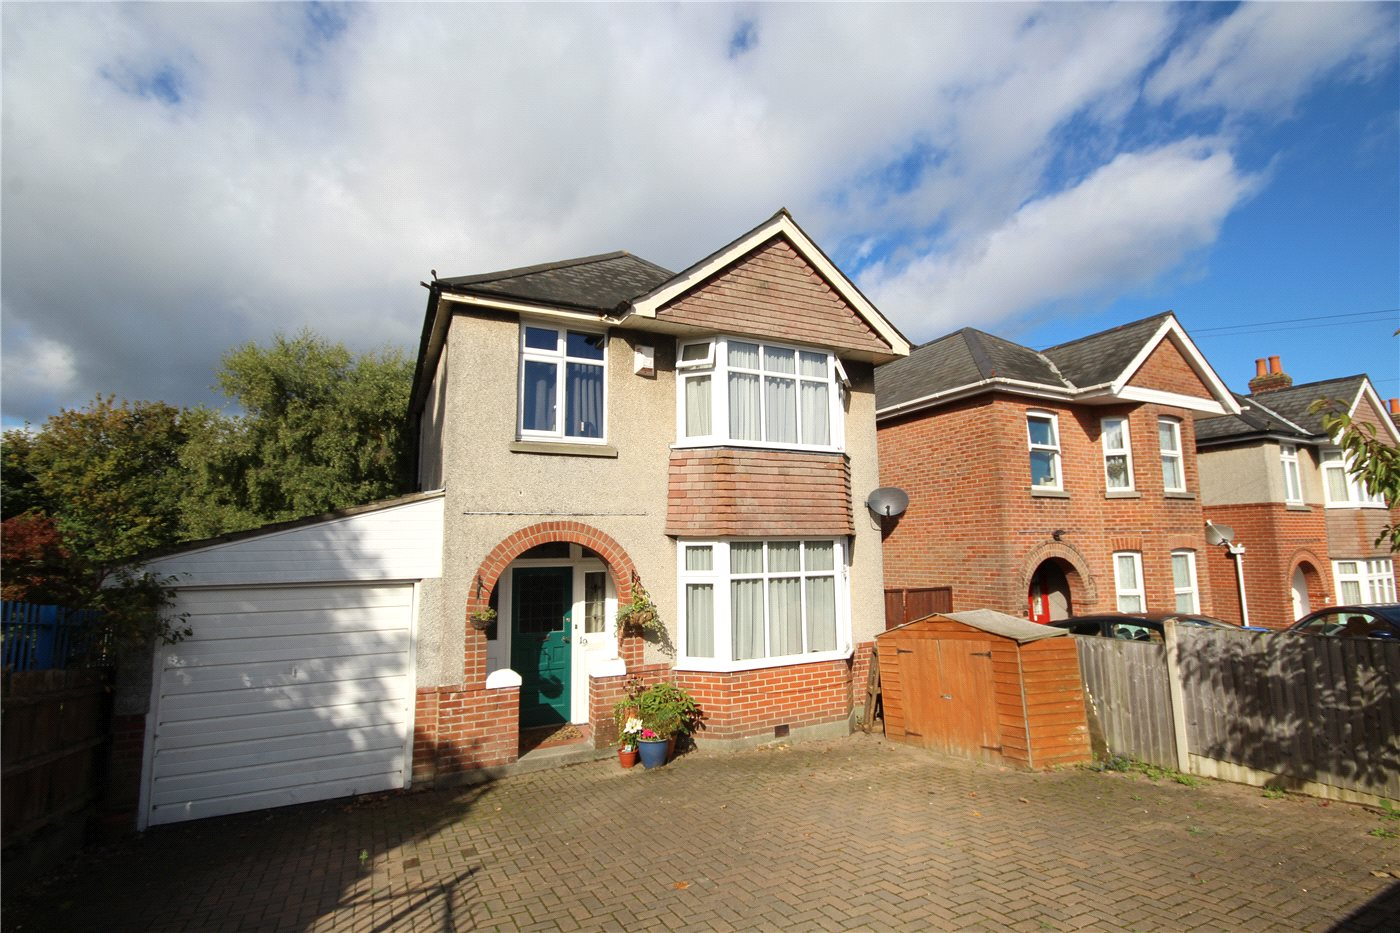 3 Bedrooms Detached House for sale in Uppleby Road, Parkstone, Poole, Dorset, BH12